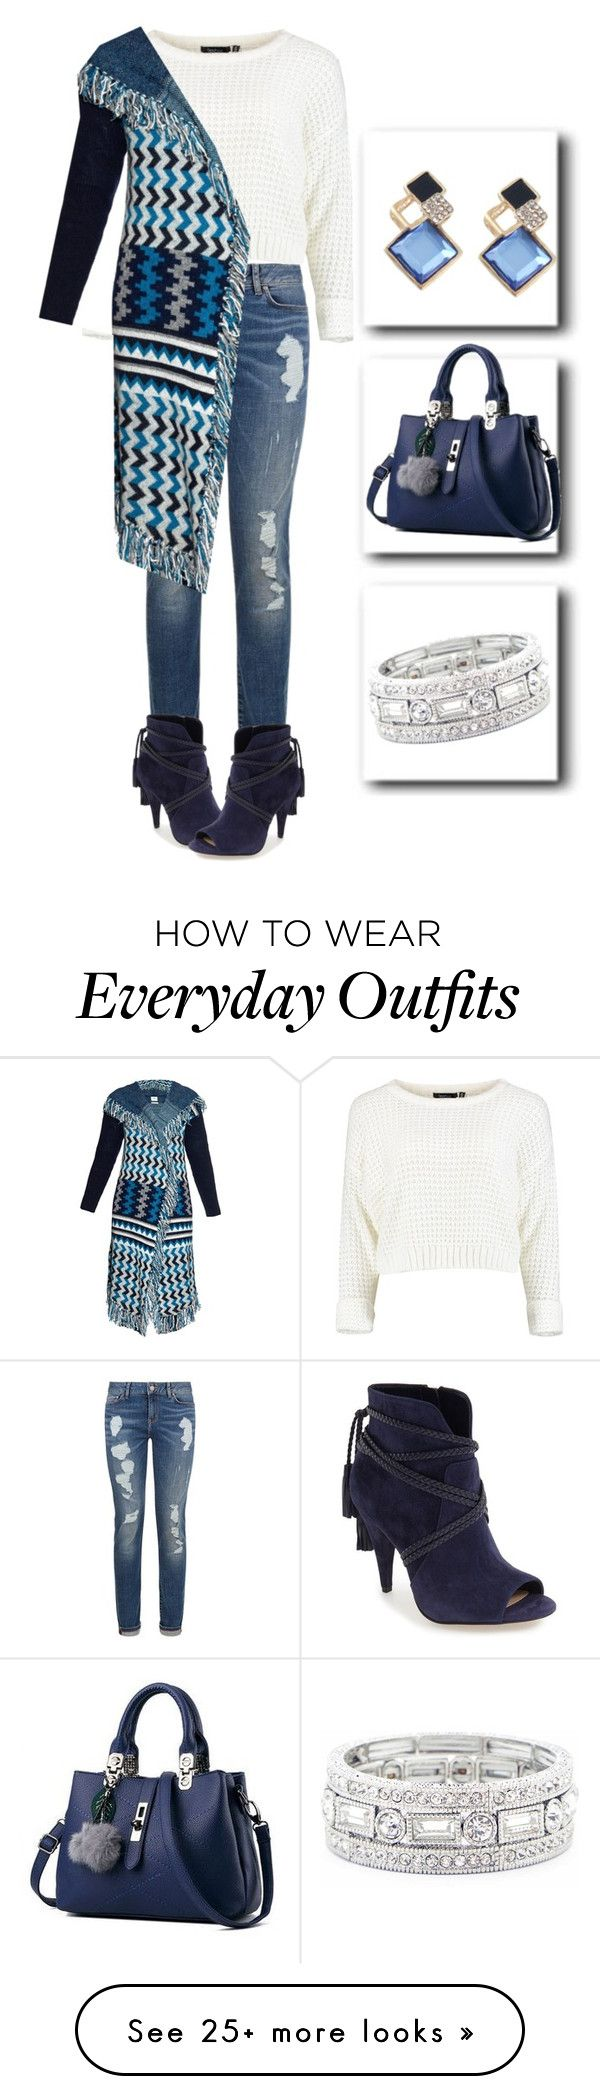 """Everyday outfit"" by lustydame on Polyvore featuring Tommy Hilfiger, Banjo & Matilda, miim, Vince Camuto and Sole Society"